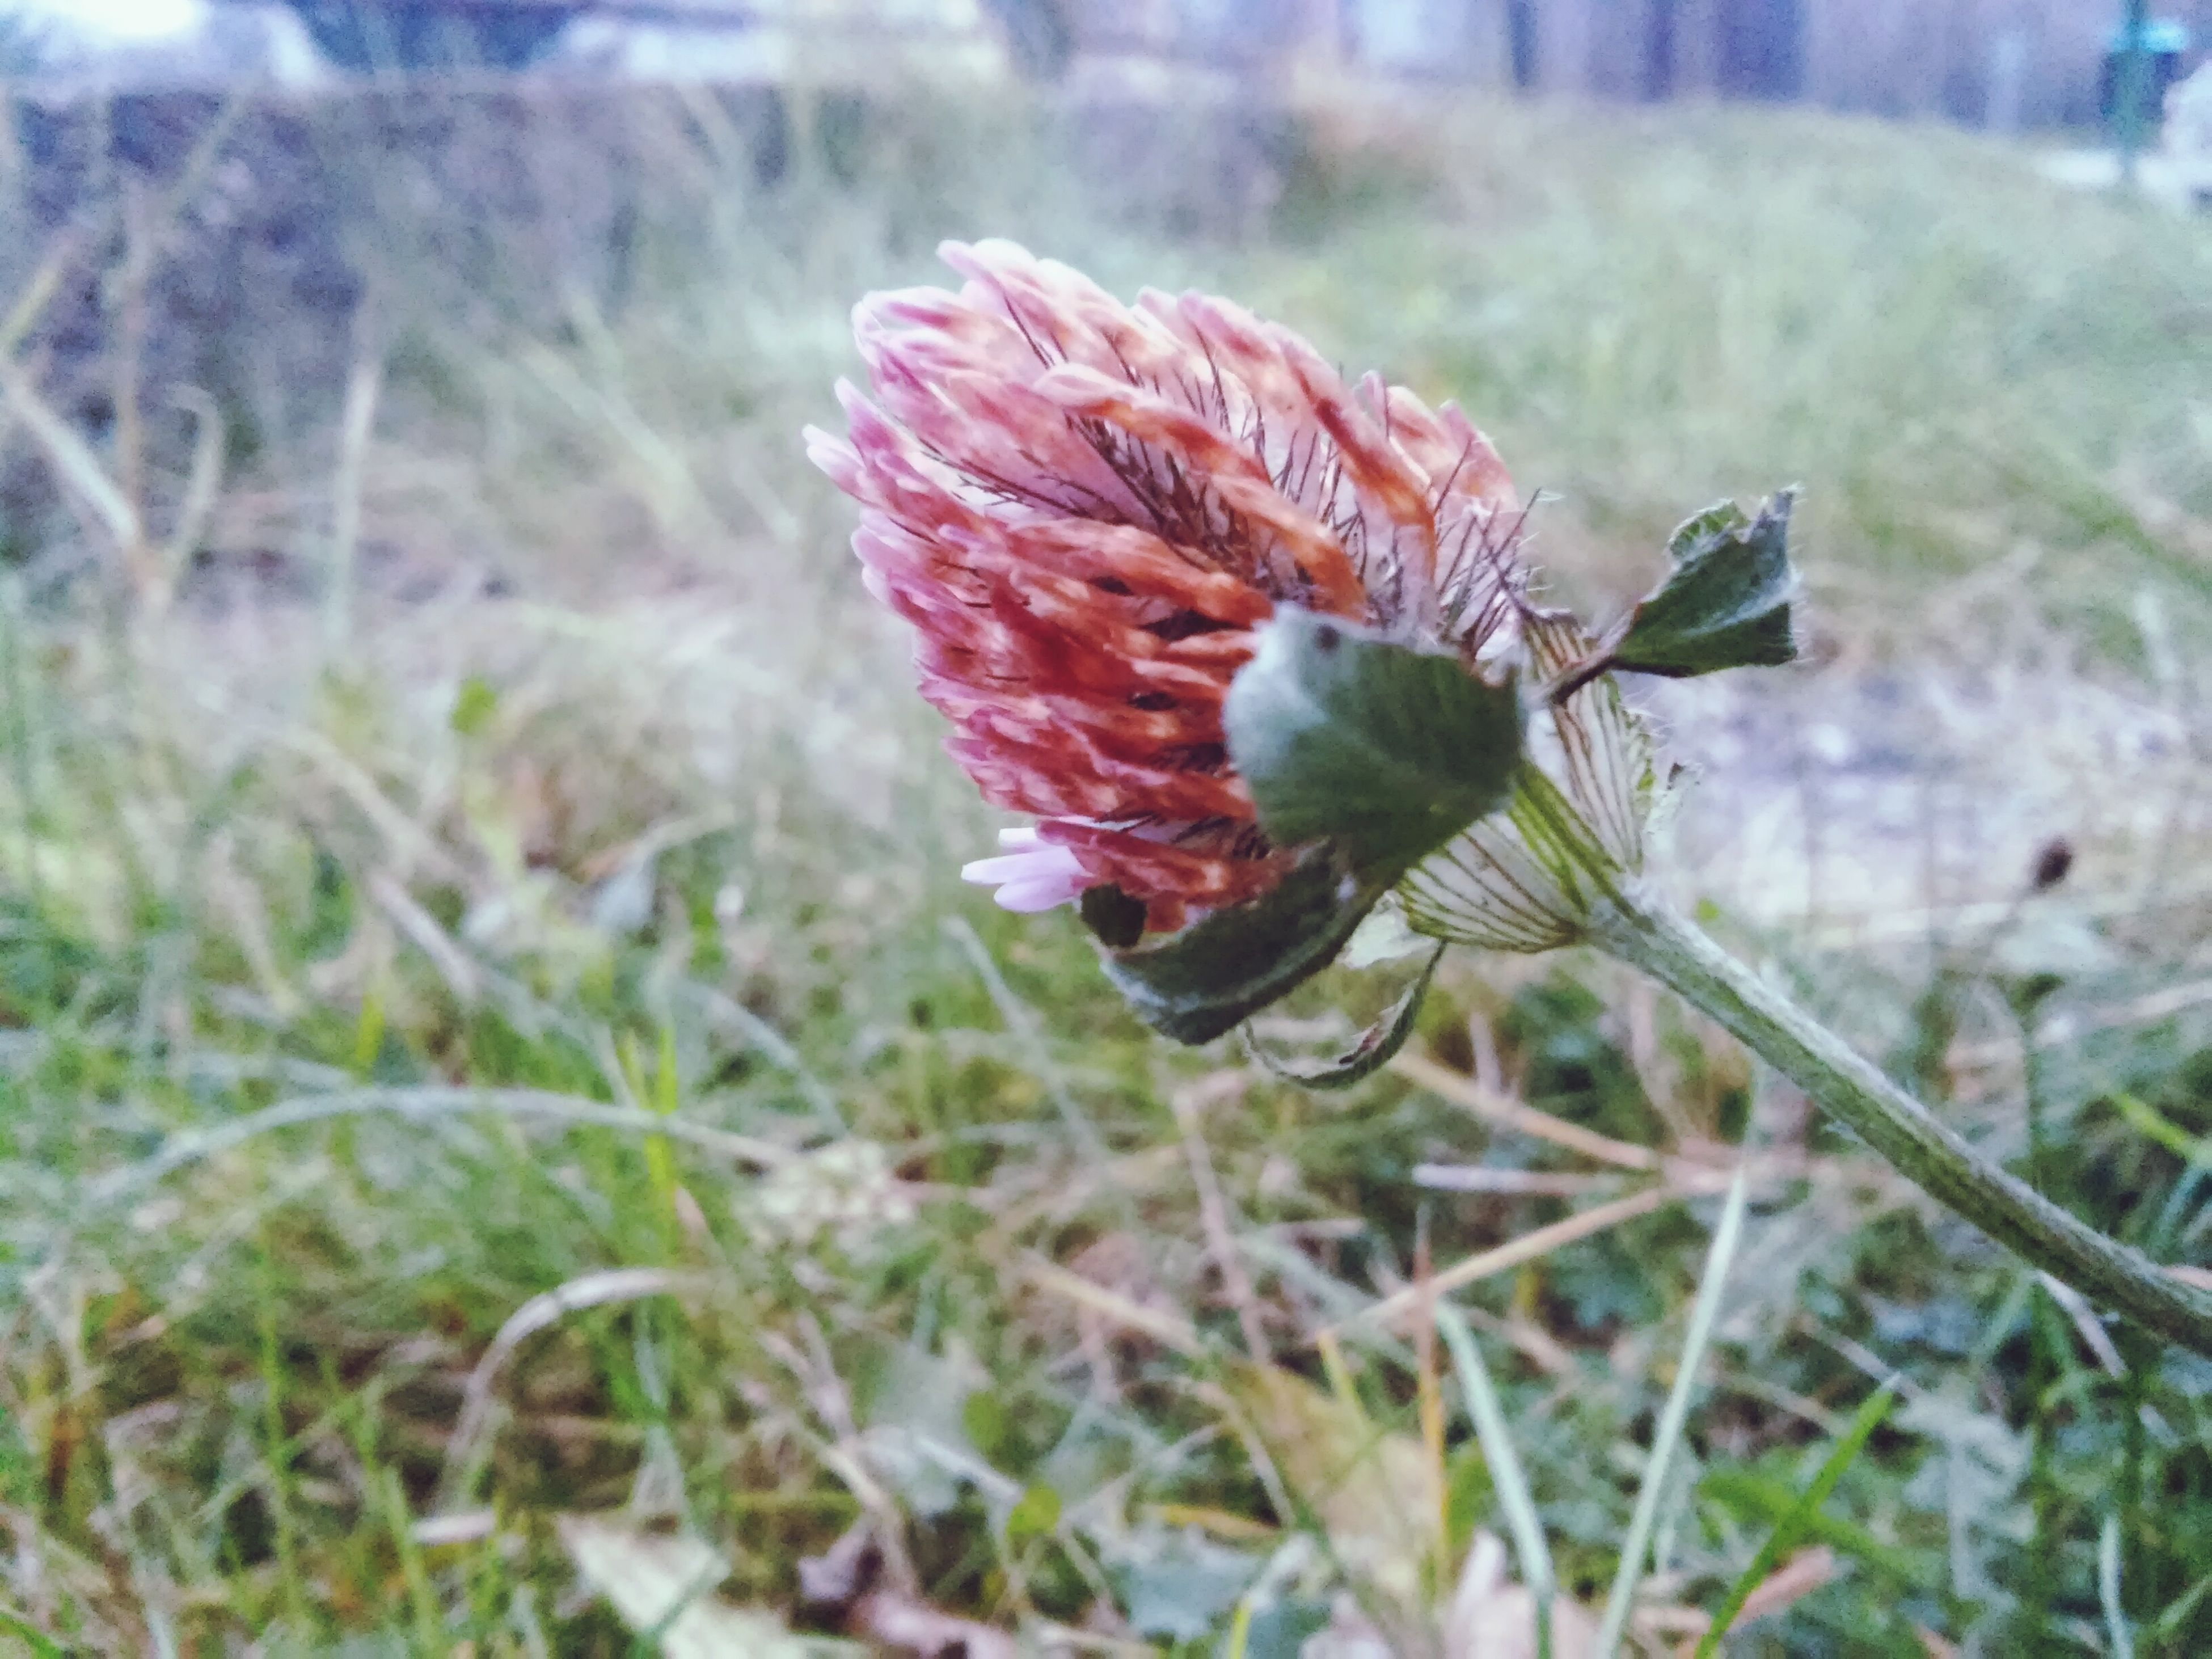 focus on foreground, animals in the wild, close-up, insect, animal themes, one animal, wildlife, flower, red, plant, fragility, nature, growth, selective focus, beauty in nature, freshness, day, stem, outdoors, field